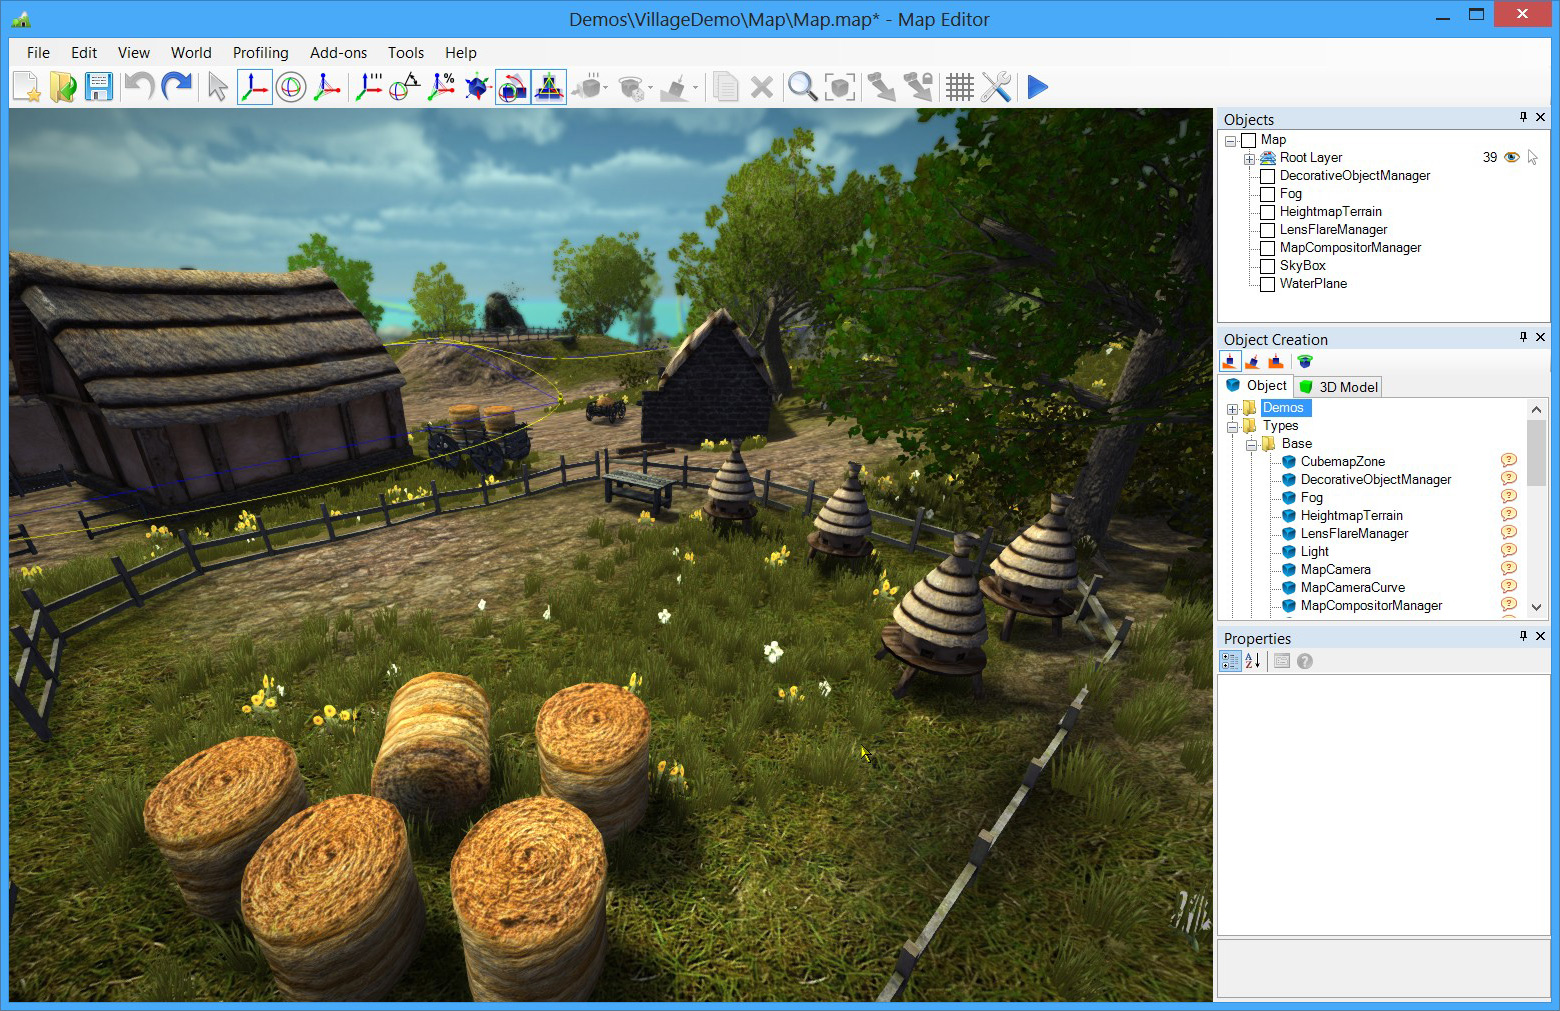 Neoaxis 3d engine 20 released now with free edition neoaxis 3d the general view of the map editor has been updated almost all the elements of the user interface have been updated gumiabroncs Image collections